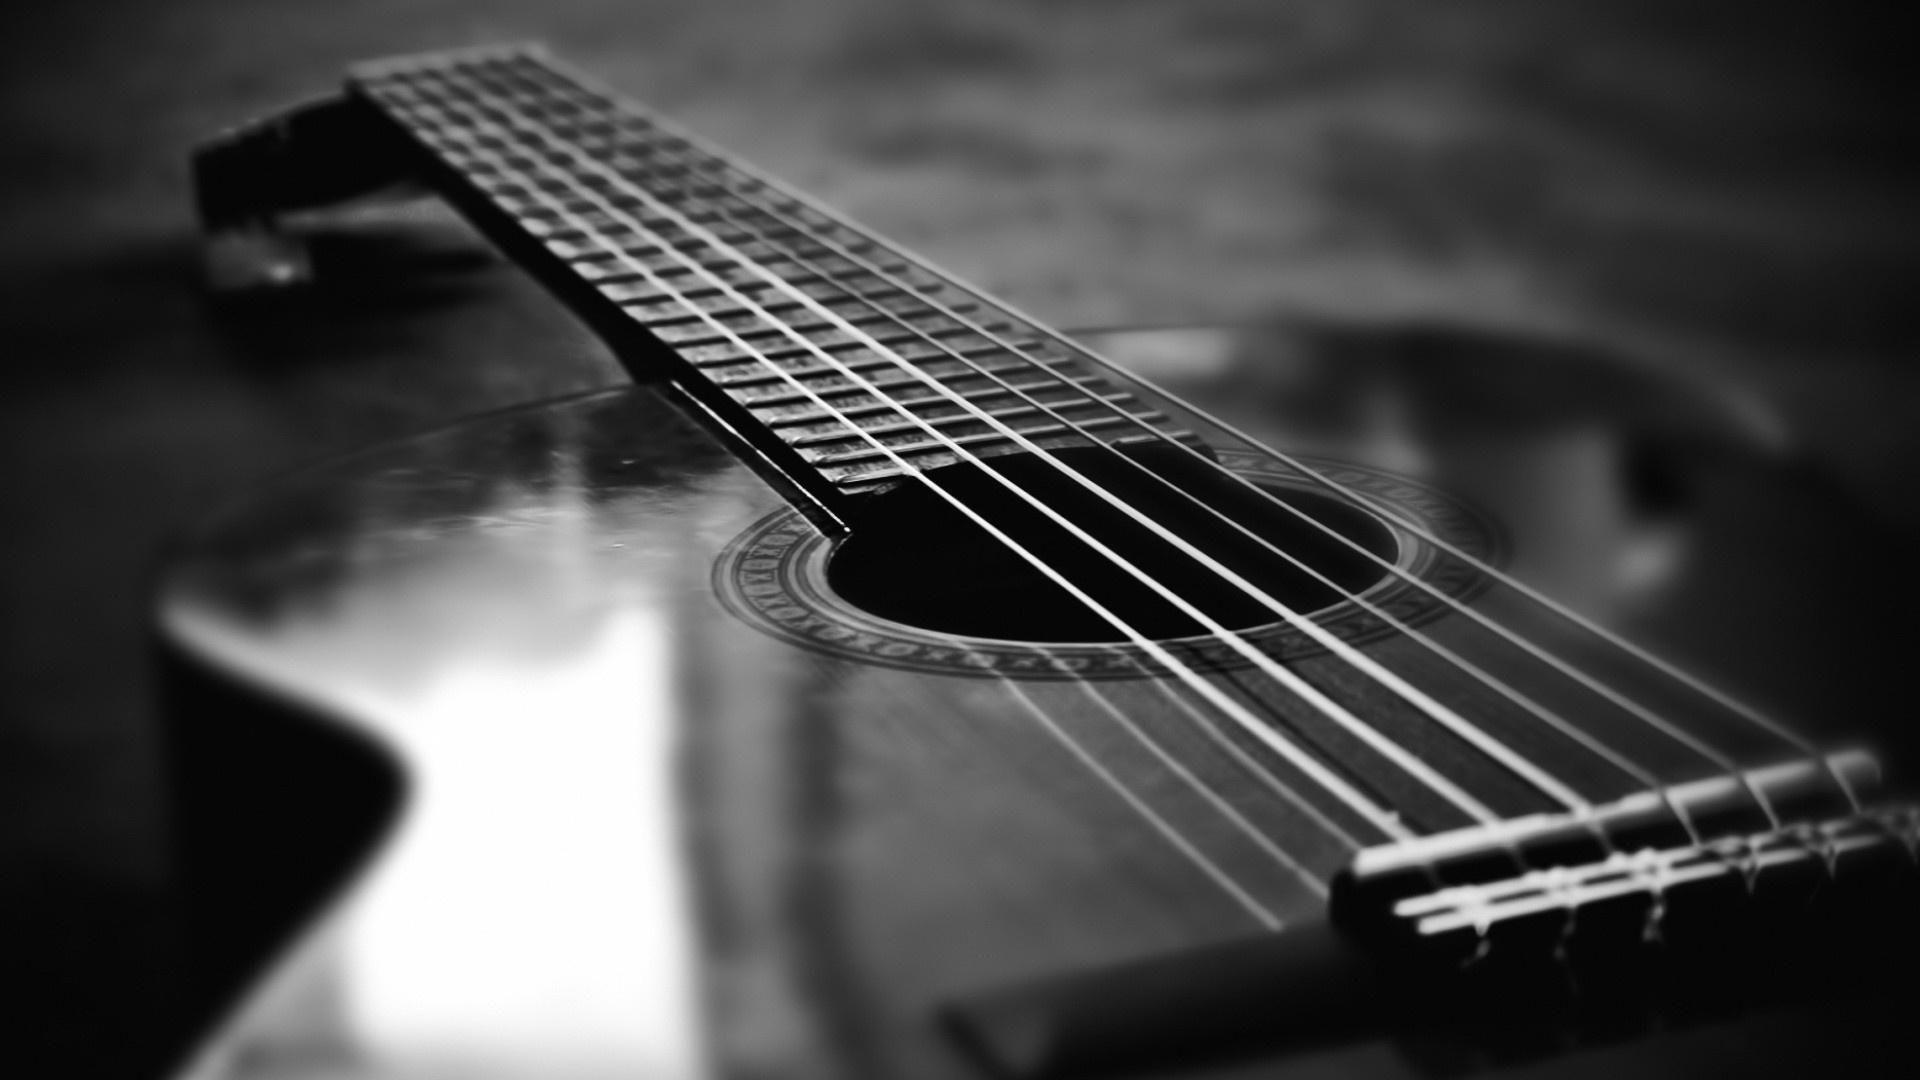 Black And White Guitar Wallpapers Group 1600 1200 Guitar Picture Wallpapers 48 Wallpapers Adorable Wall Laptop Wallpaper Guitar Collection Acoustic Guitar